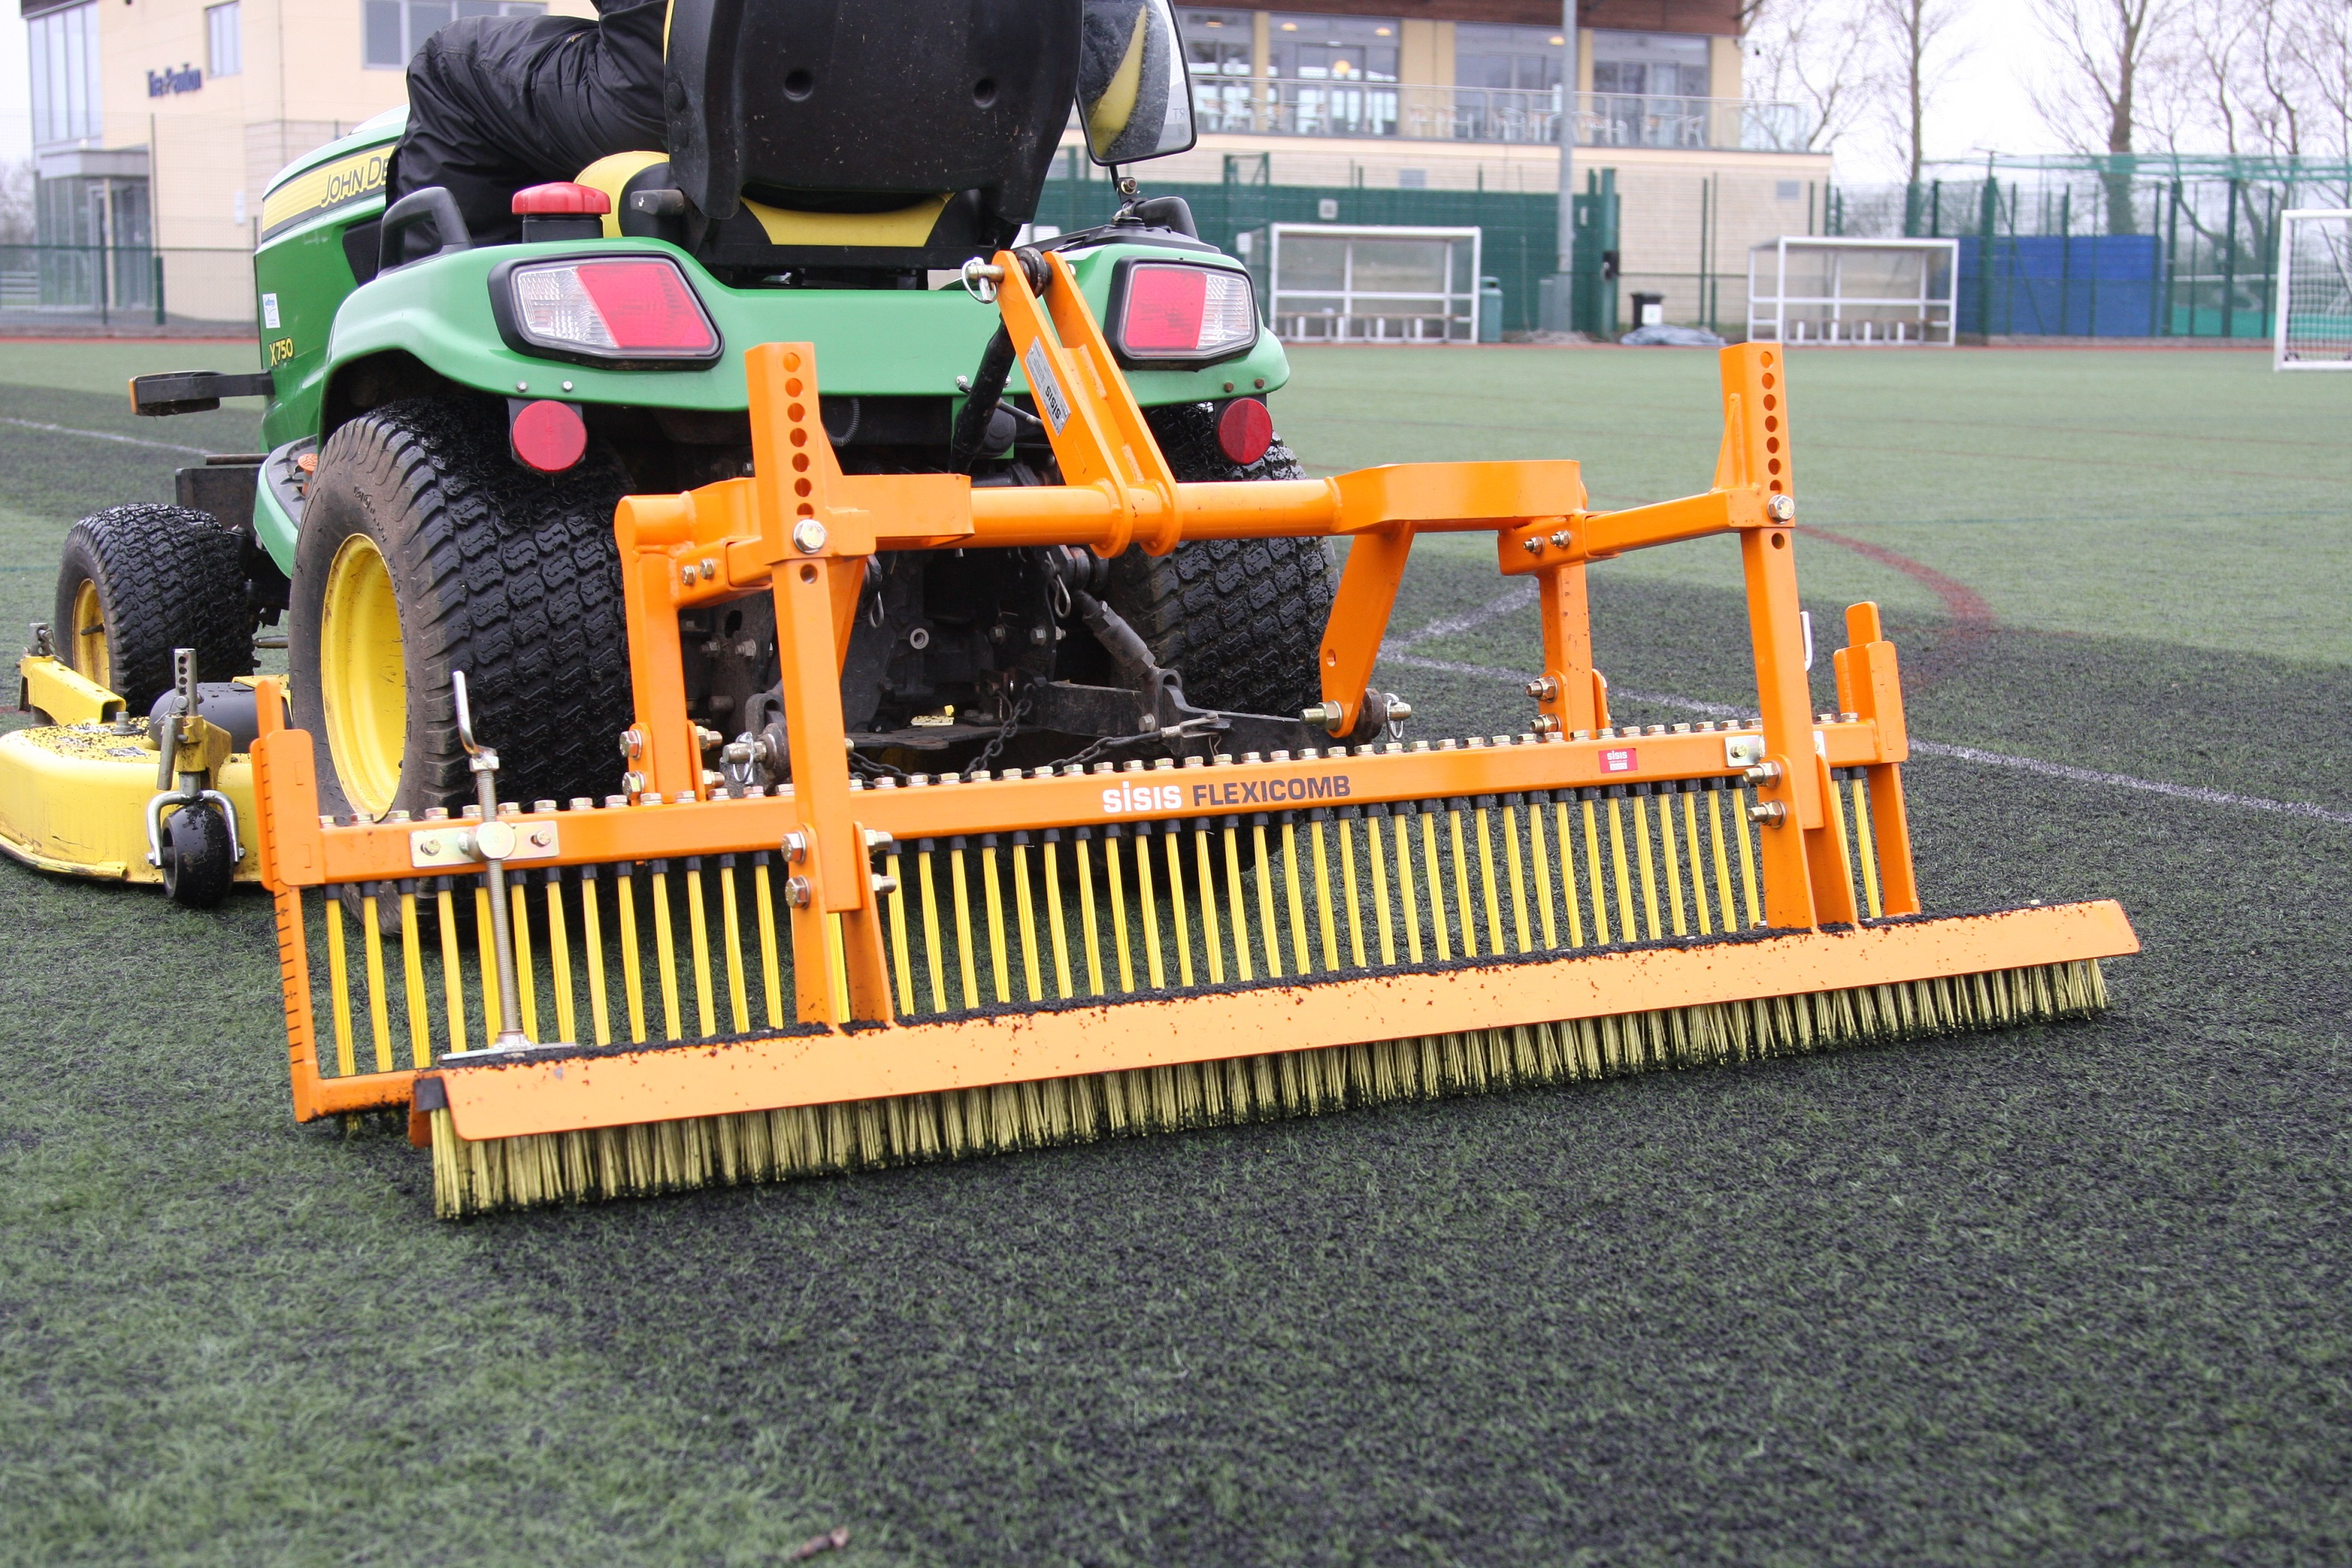 SISIS Flexicomb extends pitch life at UKC